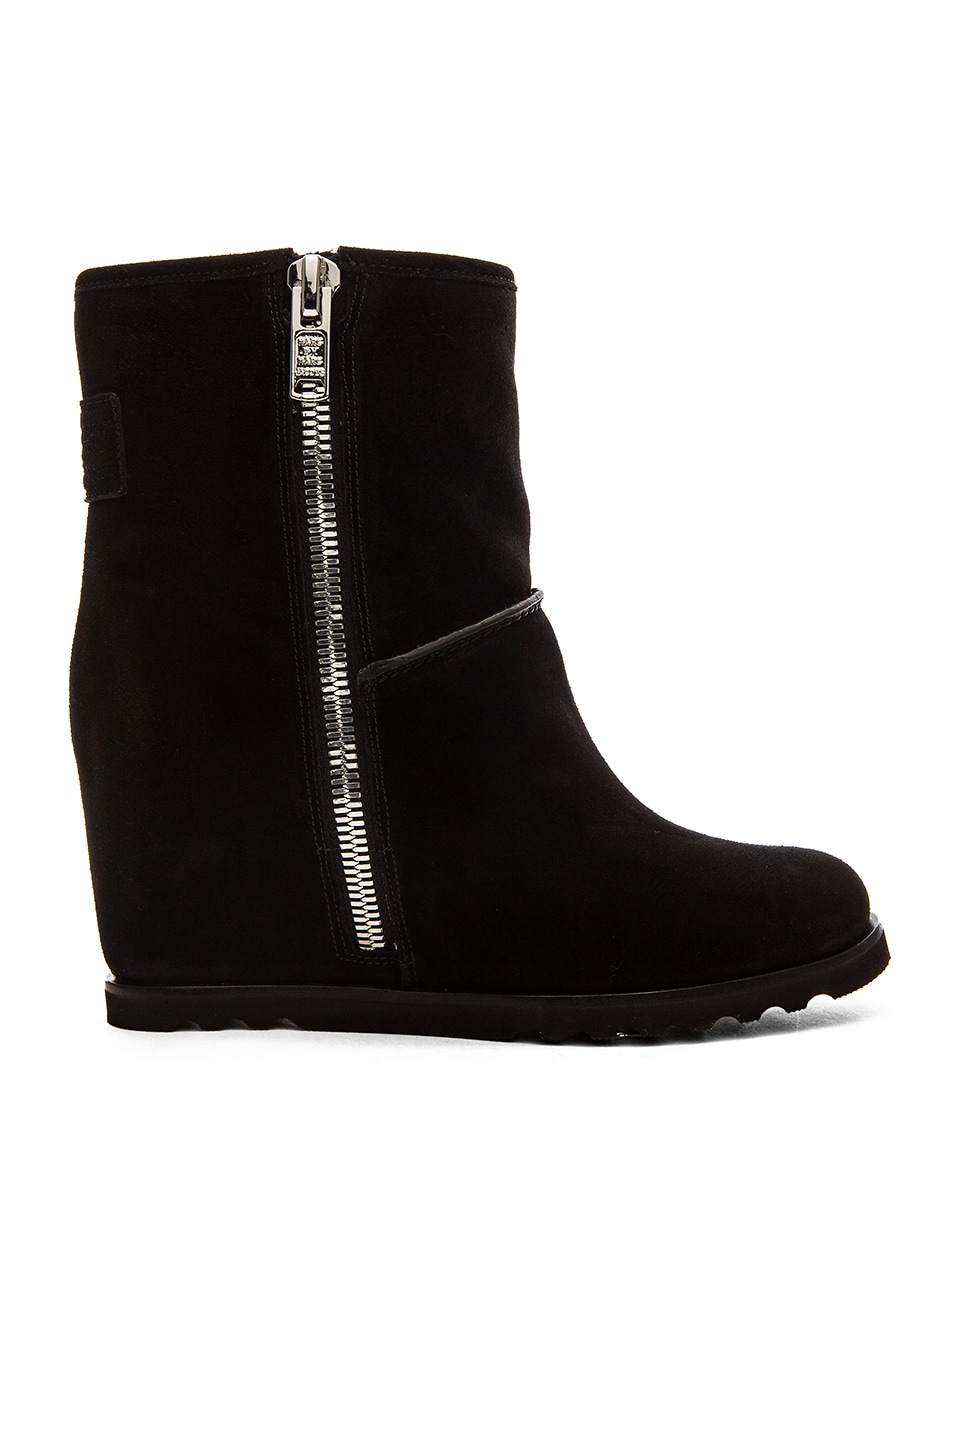 Marc by Marc Jacobs Harper Winter Warming Boot in Black